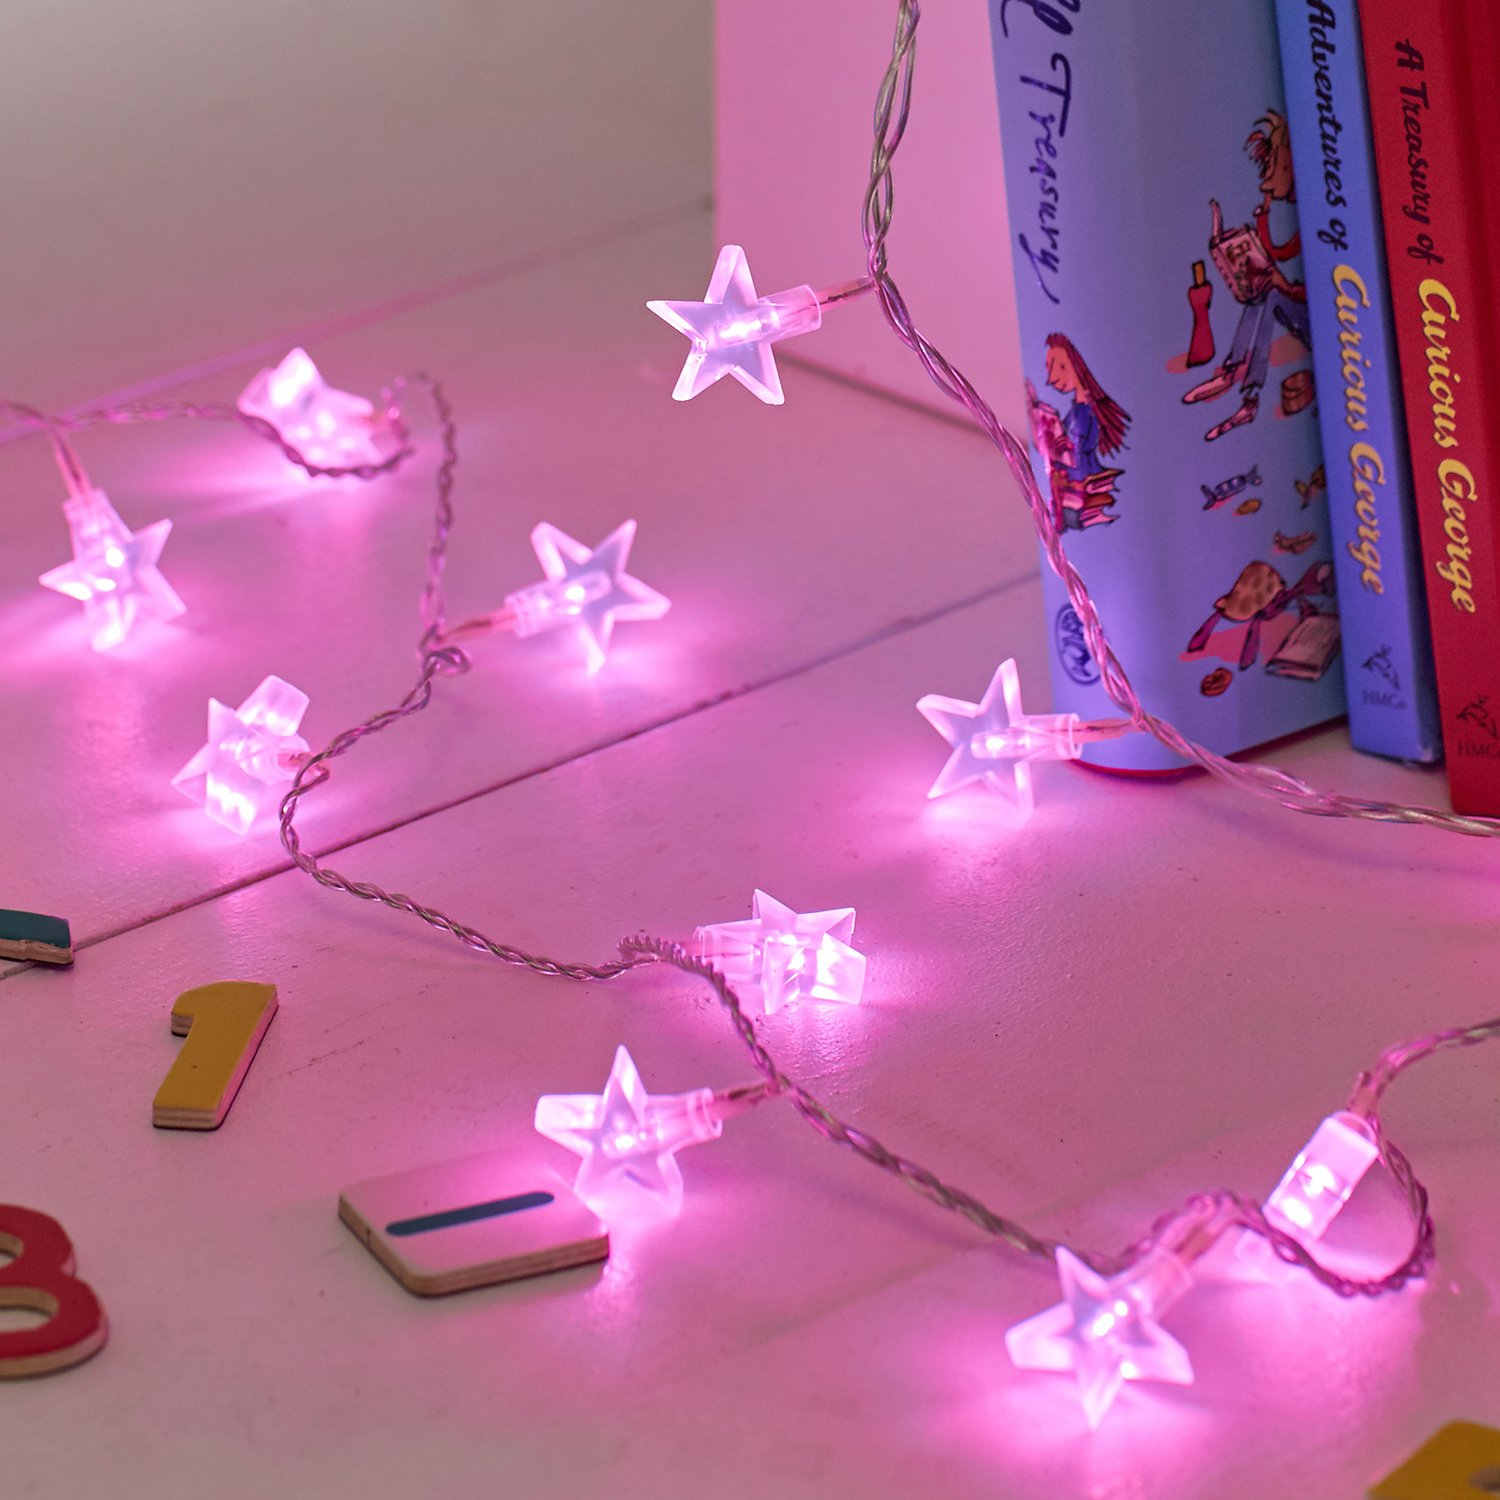 Indoor Star Fairy Lights With 30 Pink LEDs By Lights4fun: Amazon.co.uk:  Kitchen U0026 Home